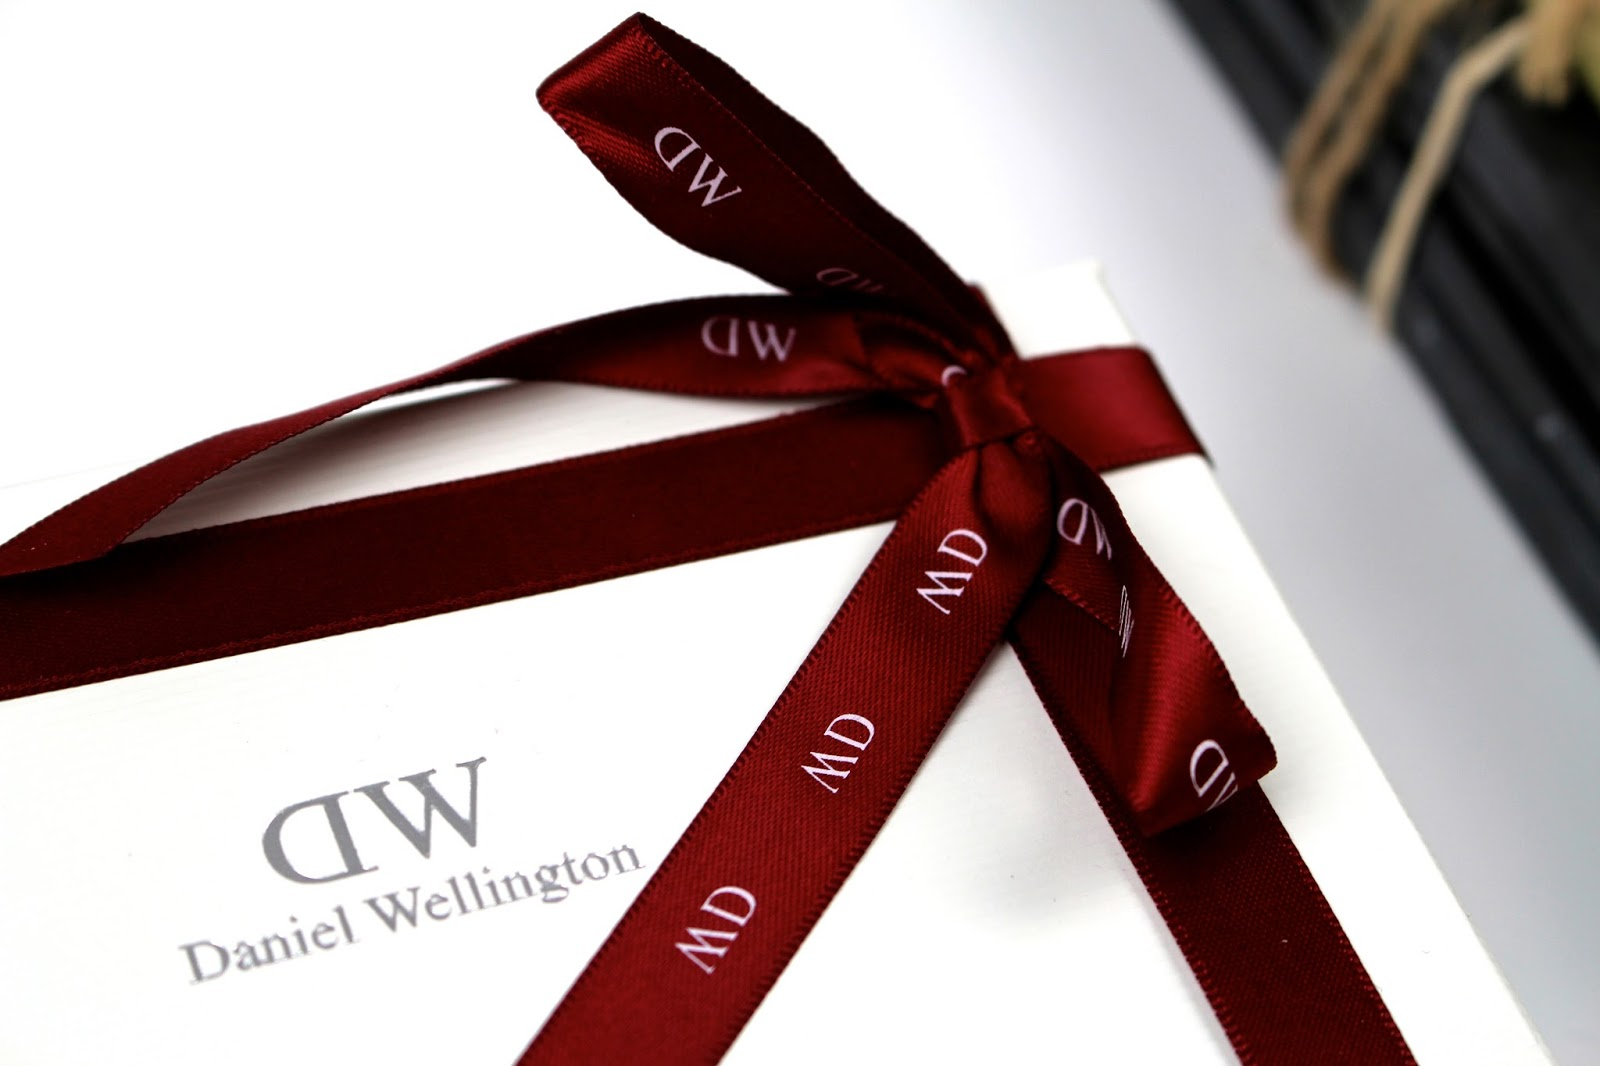 Daniel Wellington giftwrapping service